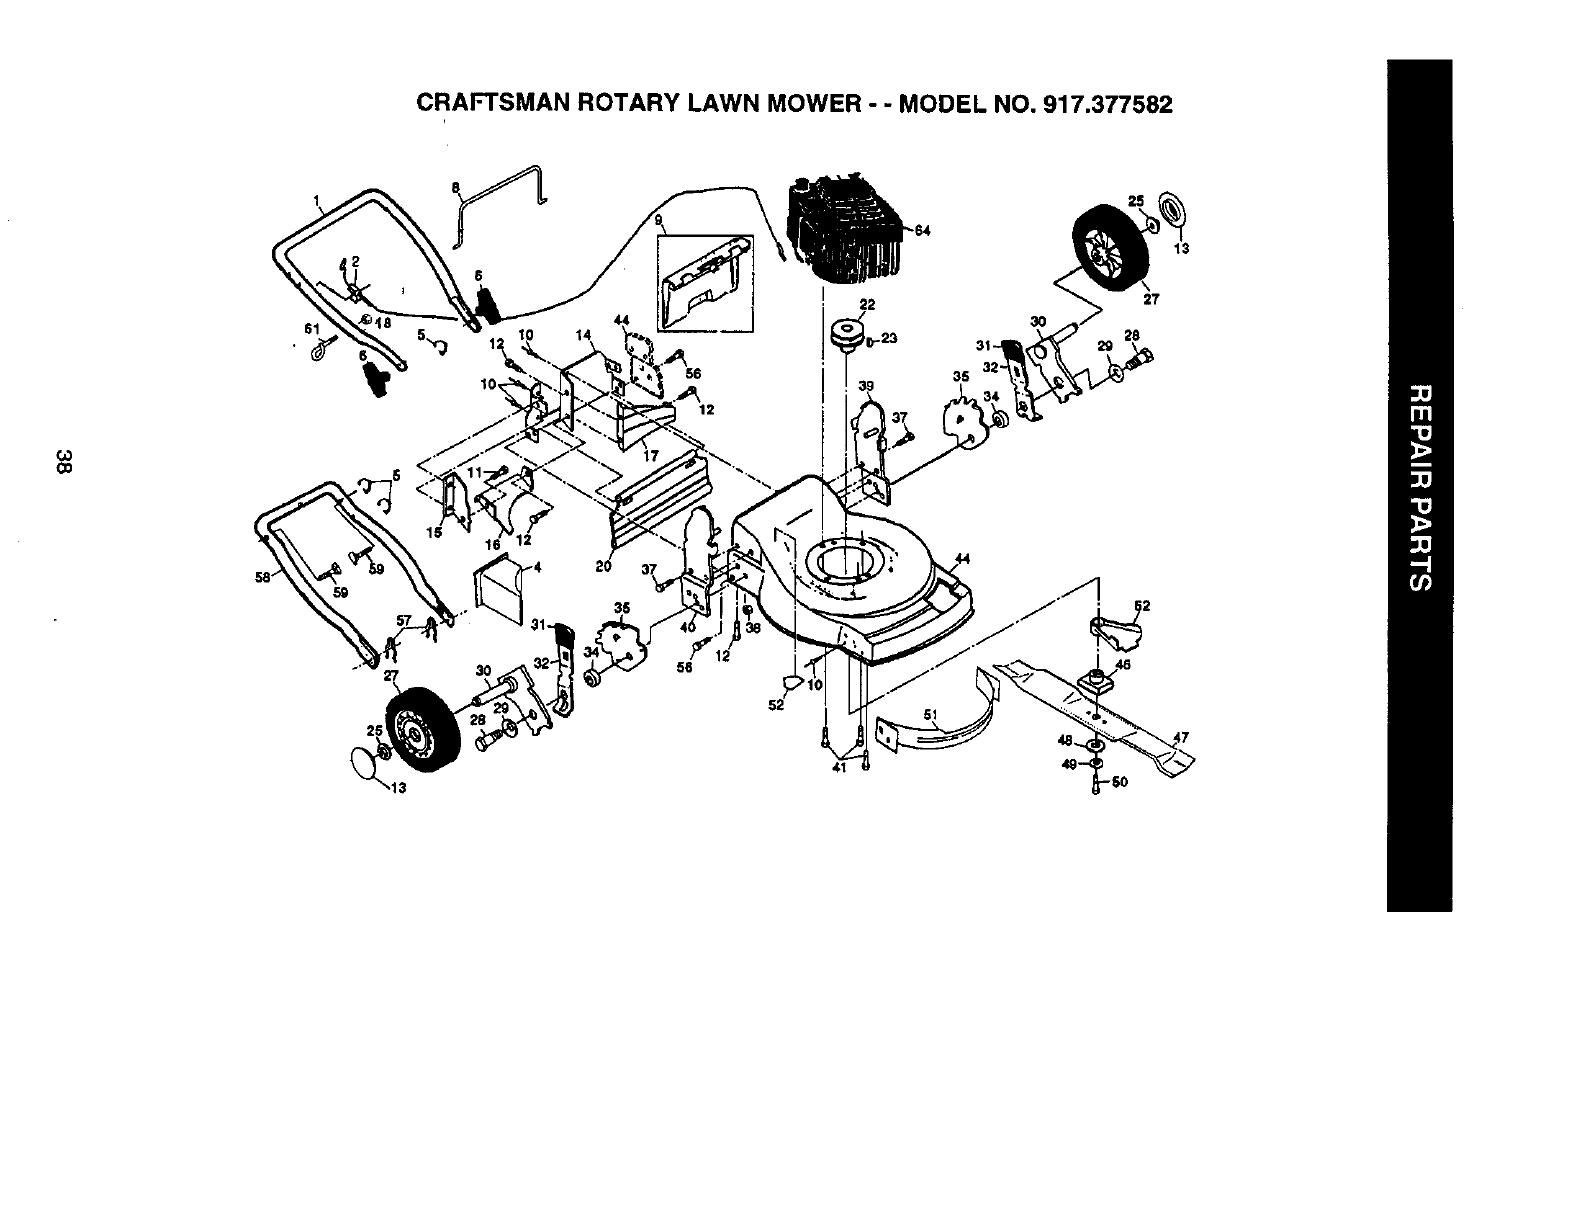 Page 20 of Craftsman Lawn Mower 917.377582 User Guide